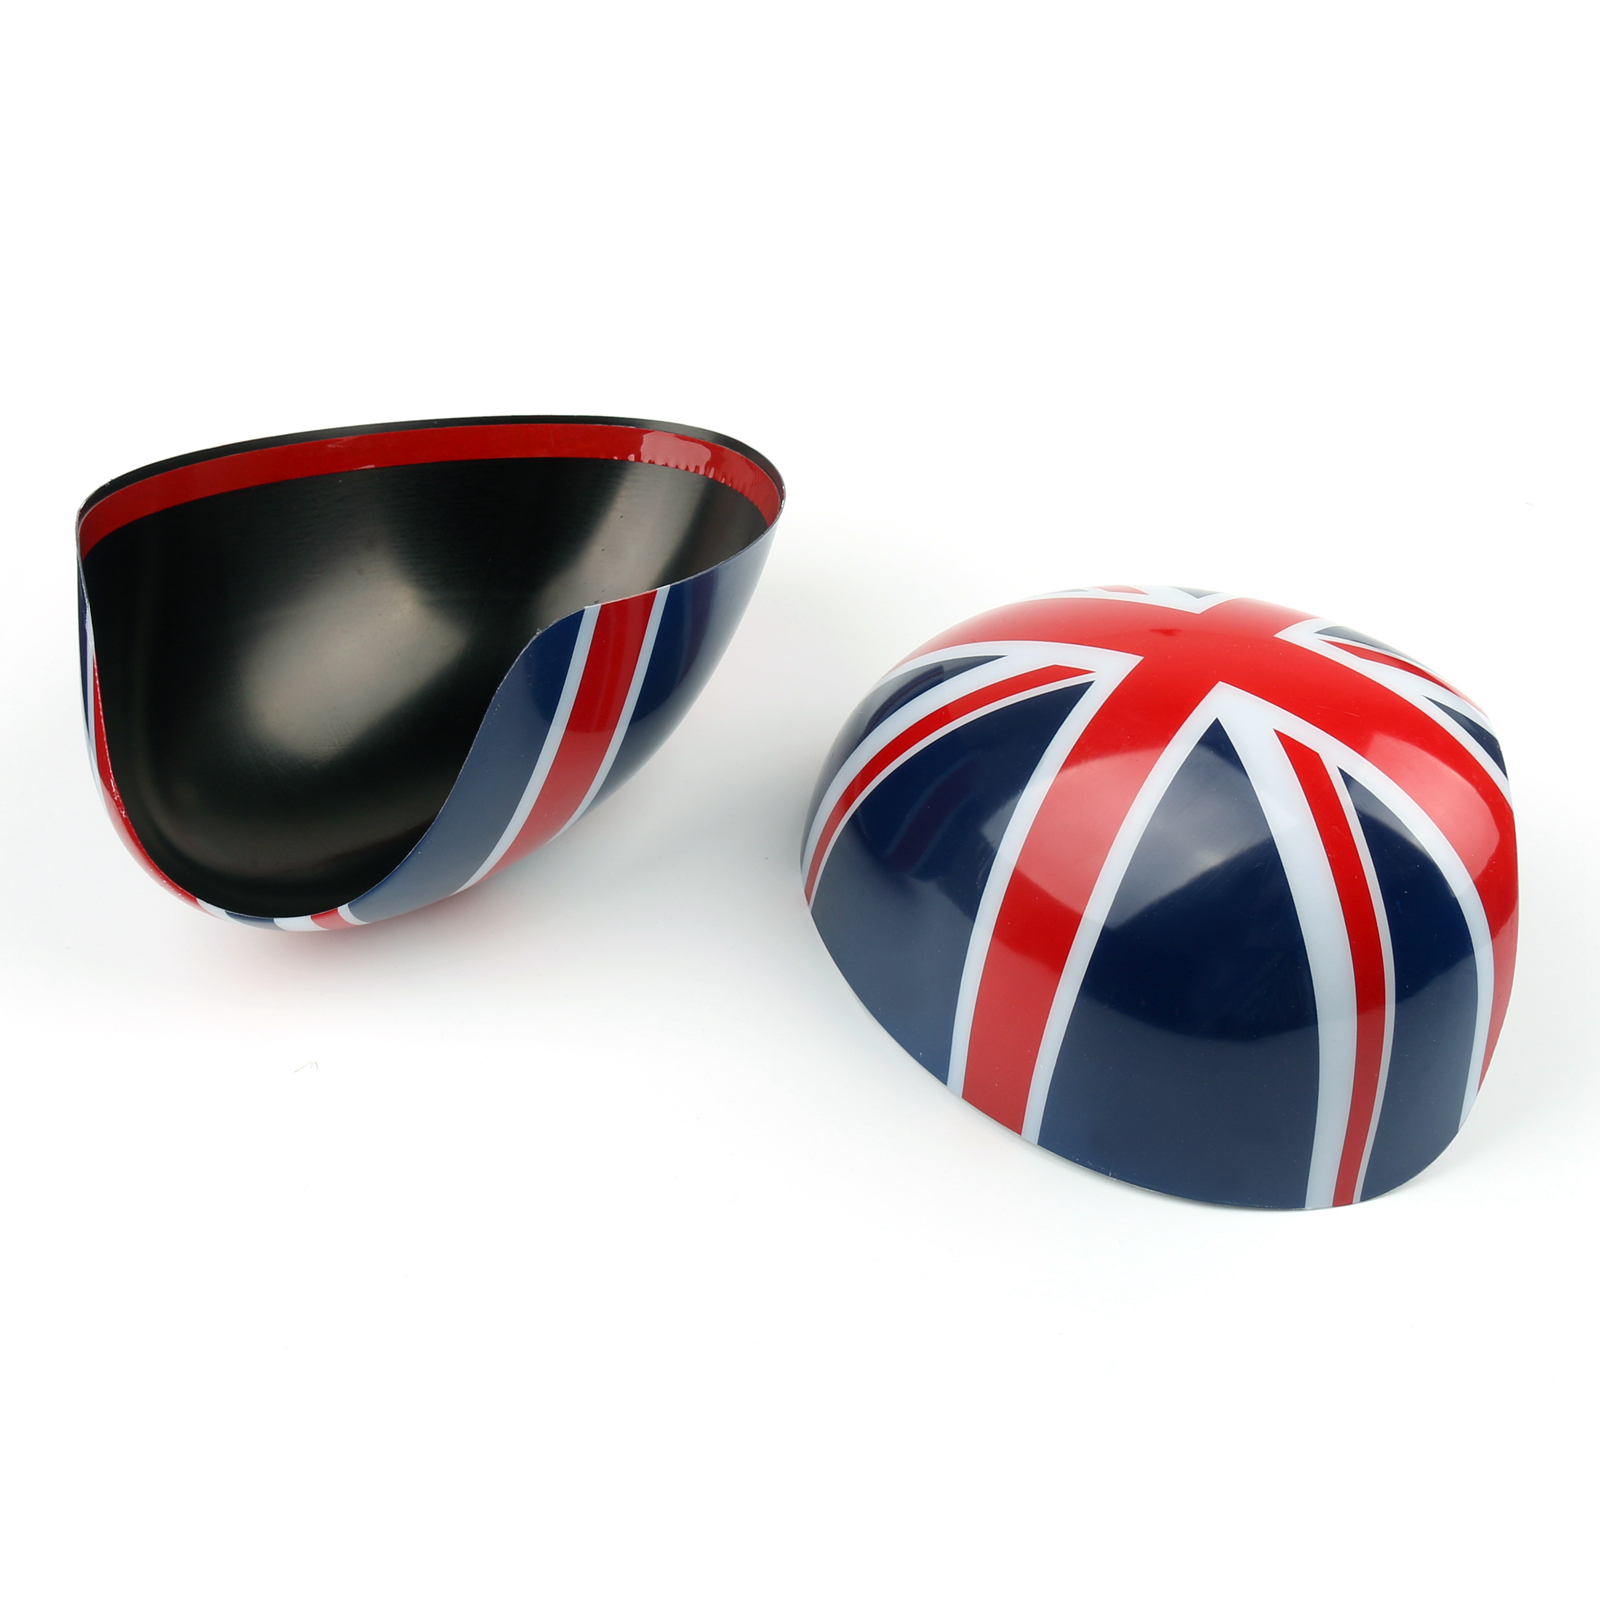 2 x union jack wing mirror covers for mini cooper r55 r56. Black Bedroom Furniture Sets. Home Design Ideas